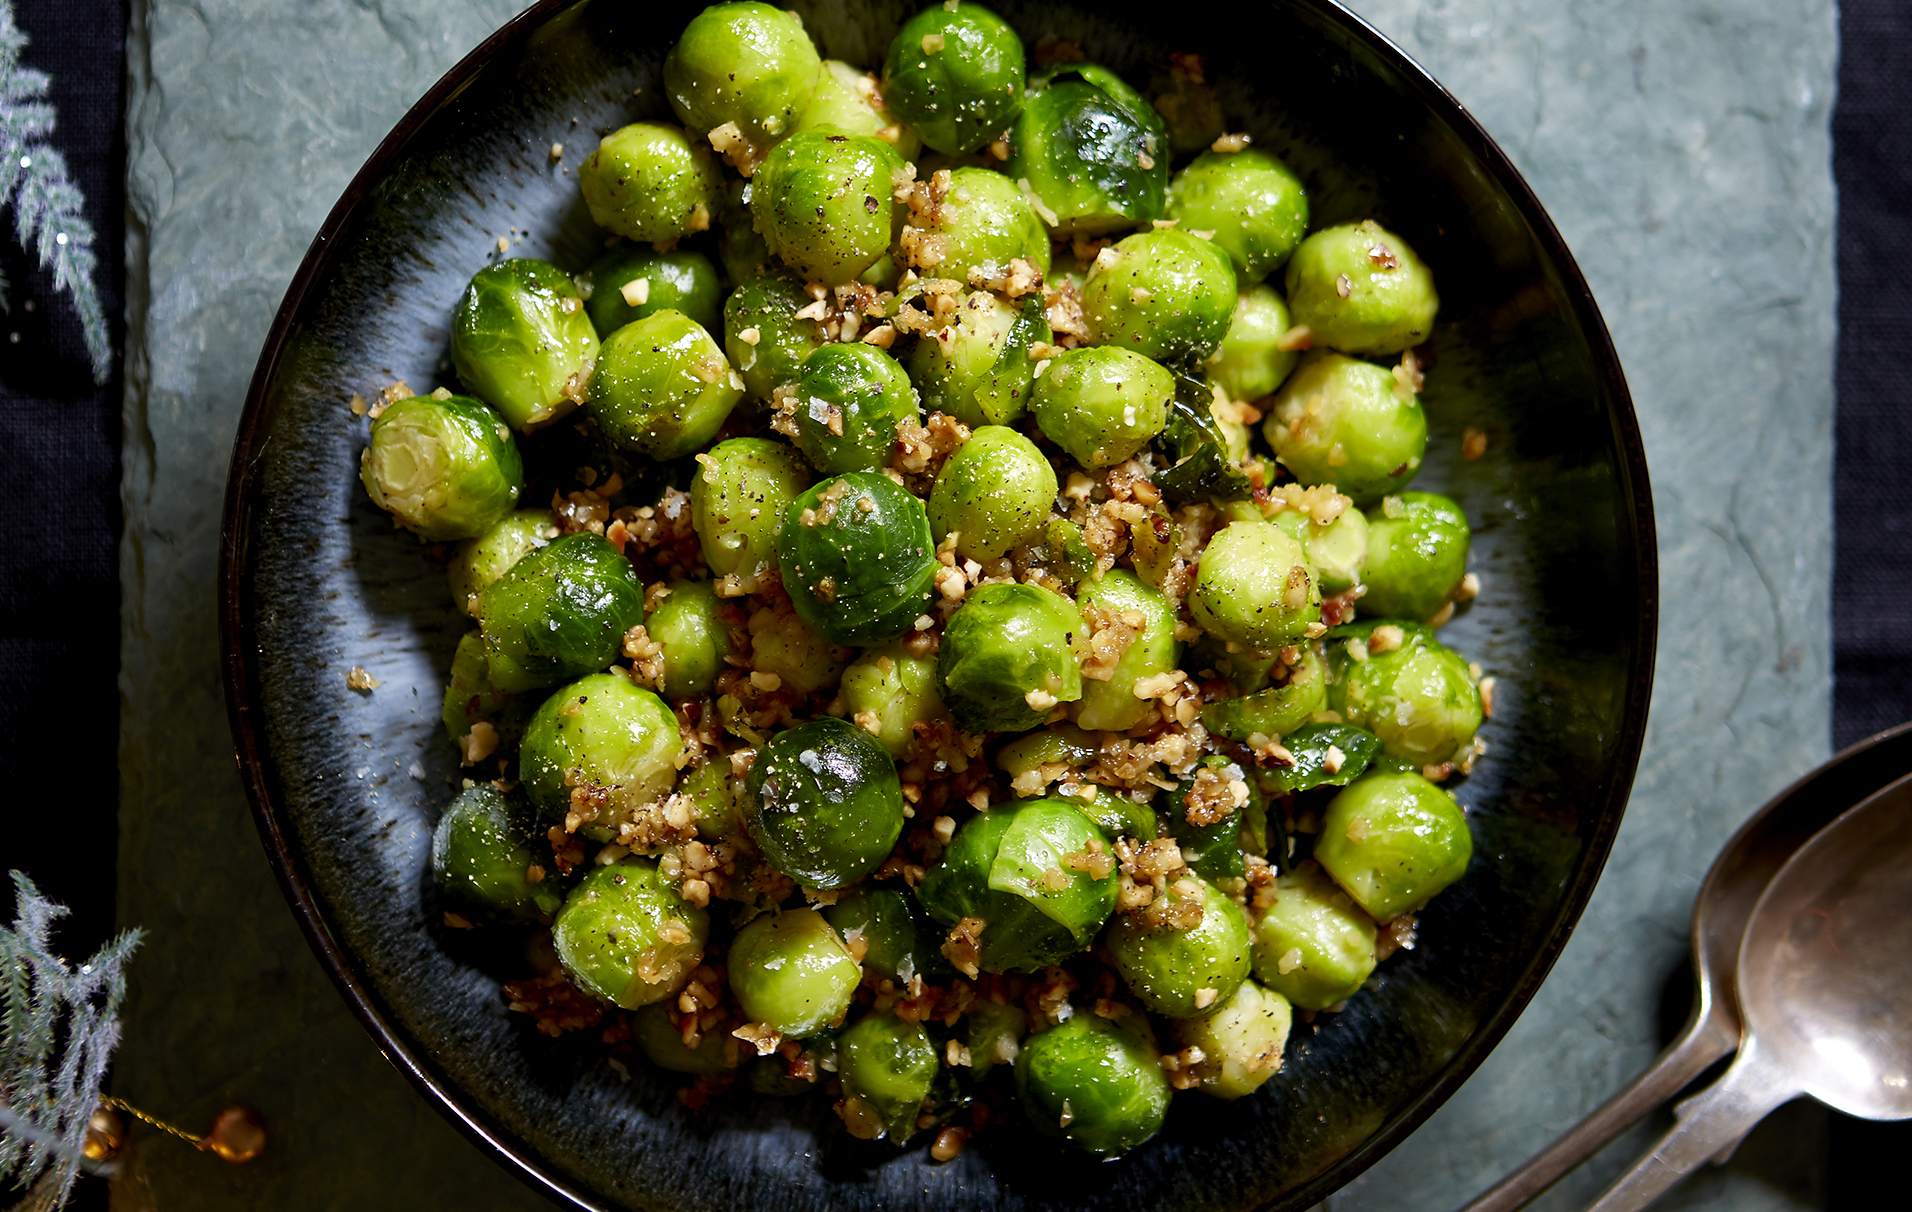 Your Christmas dinner won't be complete without these french style garlic brussel sprouts